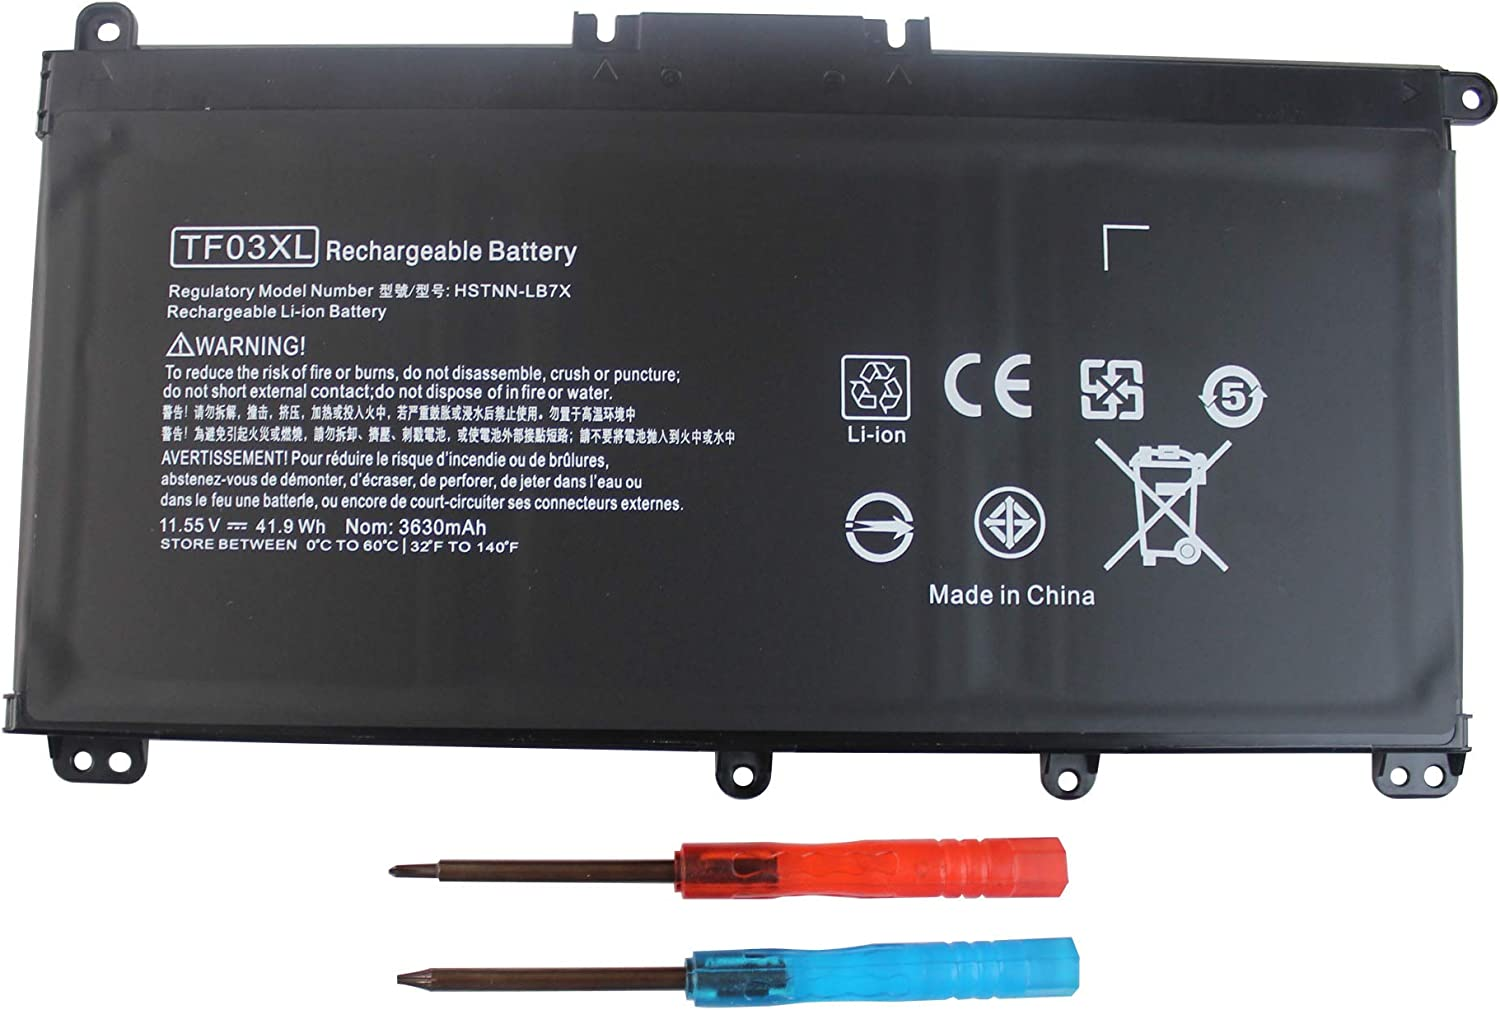 Angwel TF03XL Laptop Battery for HP Pavilion 15-CC 15-CD 17-AR Series, Fit for HP 920046-121 920046-421 HSTNN-IB7Y HSTNN-LB7J TPN-Q188 TPN-Q189 Series[11.55V 41.9WH] — 1 Year Warranty